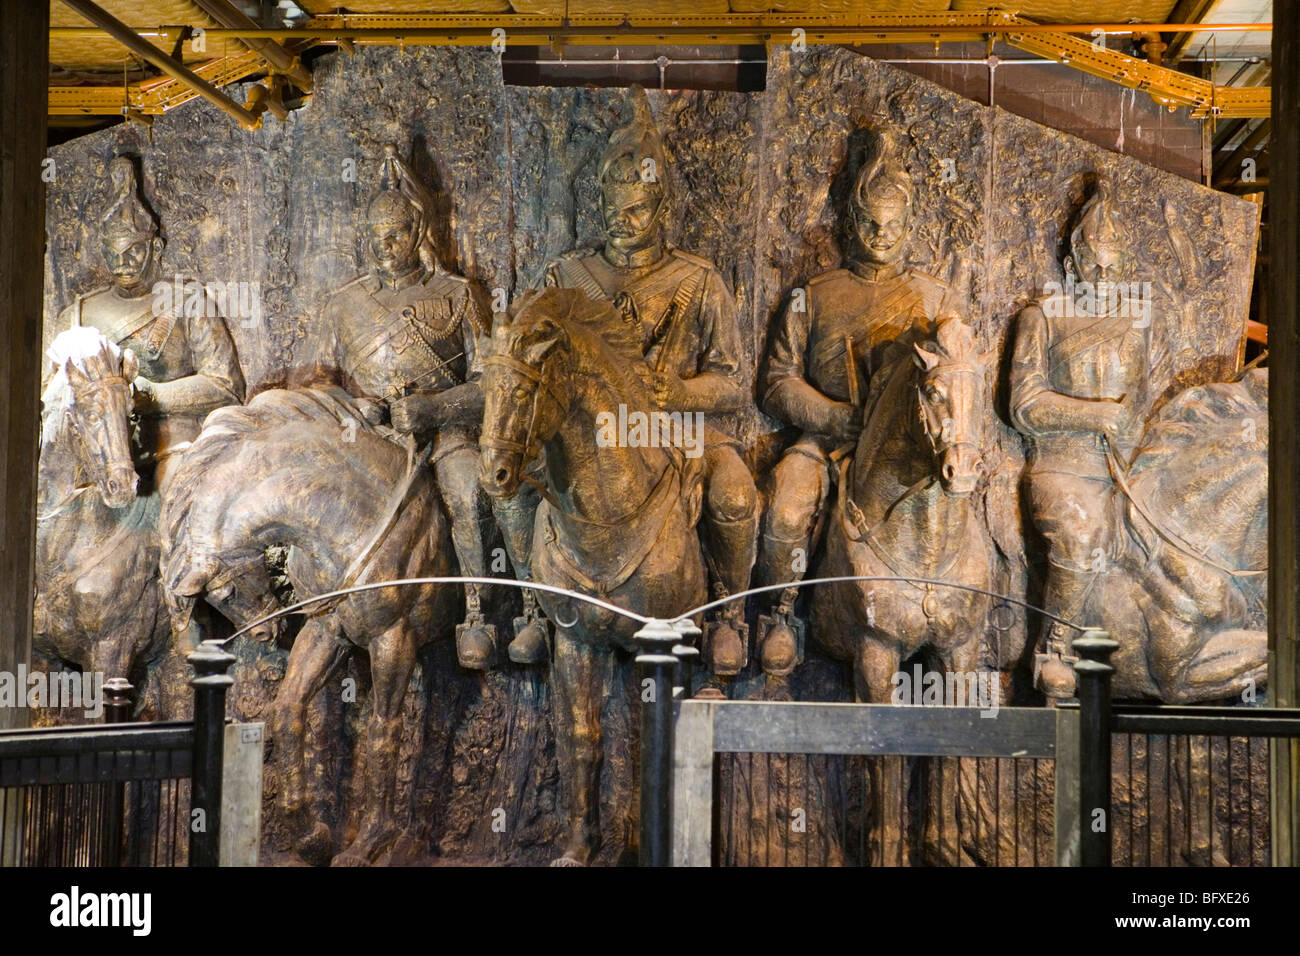 Metal bronze horses sculpture, Camden Stables Market, London - Stock Image